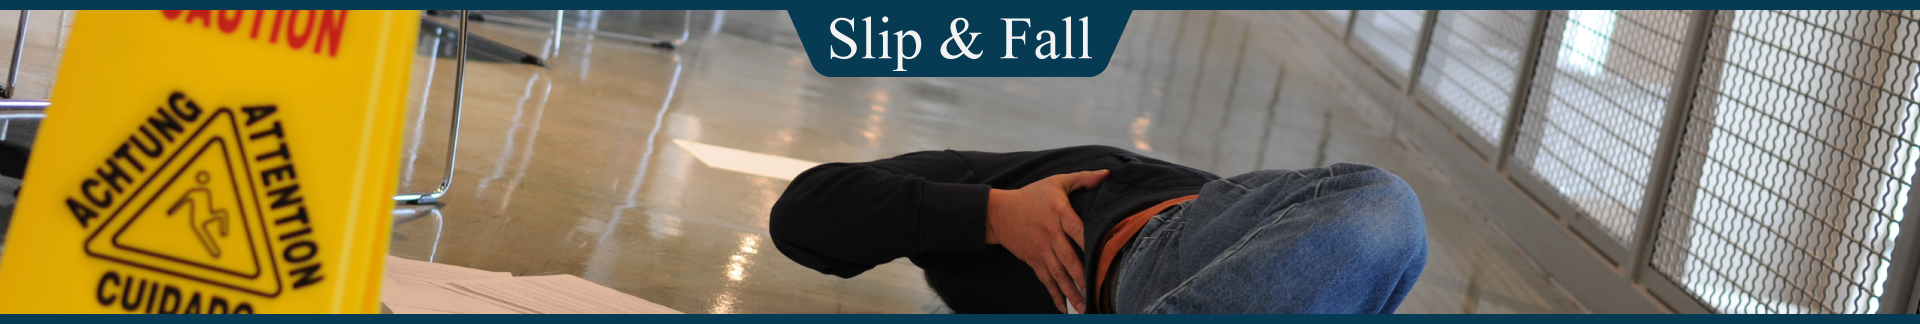 Slip and Fall The Peña Law Firm Miami